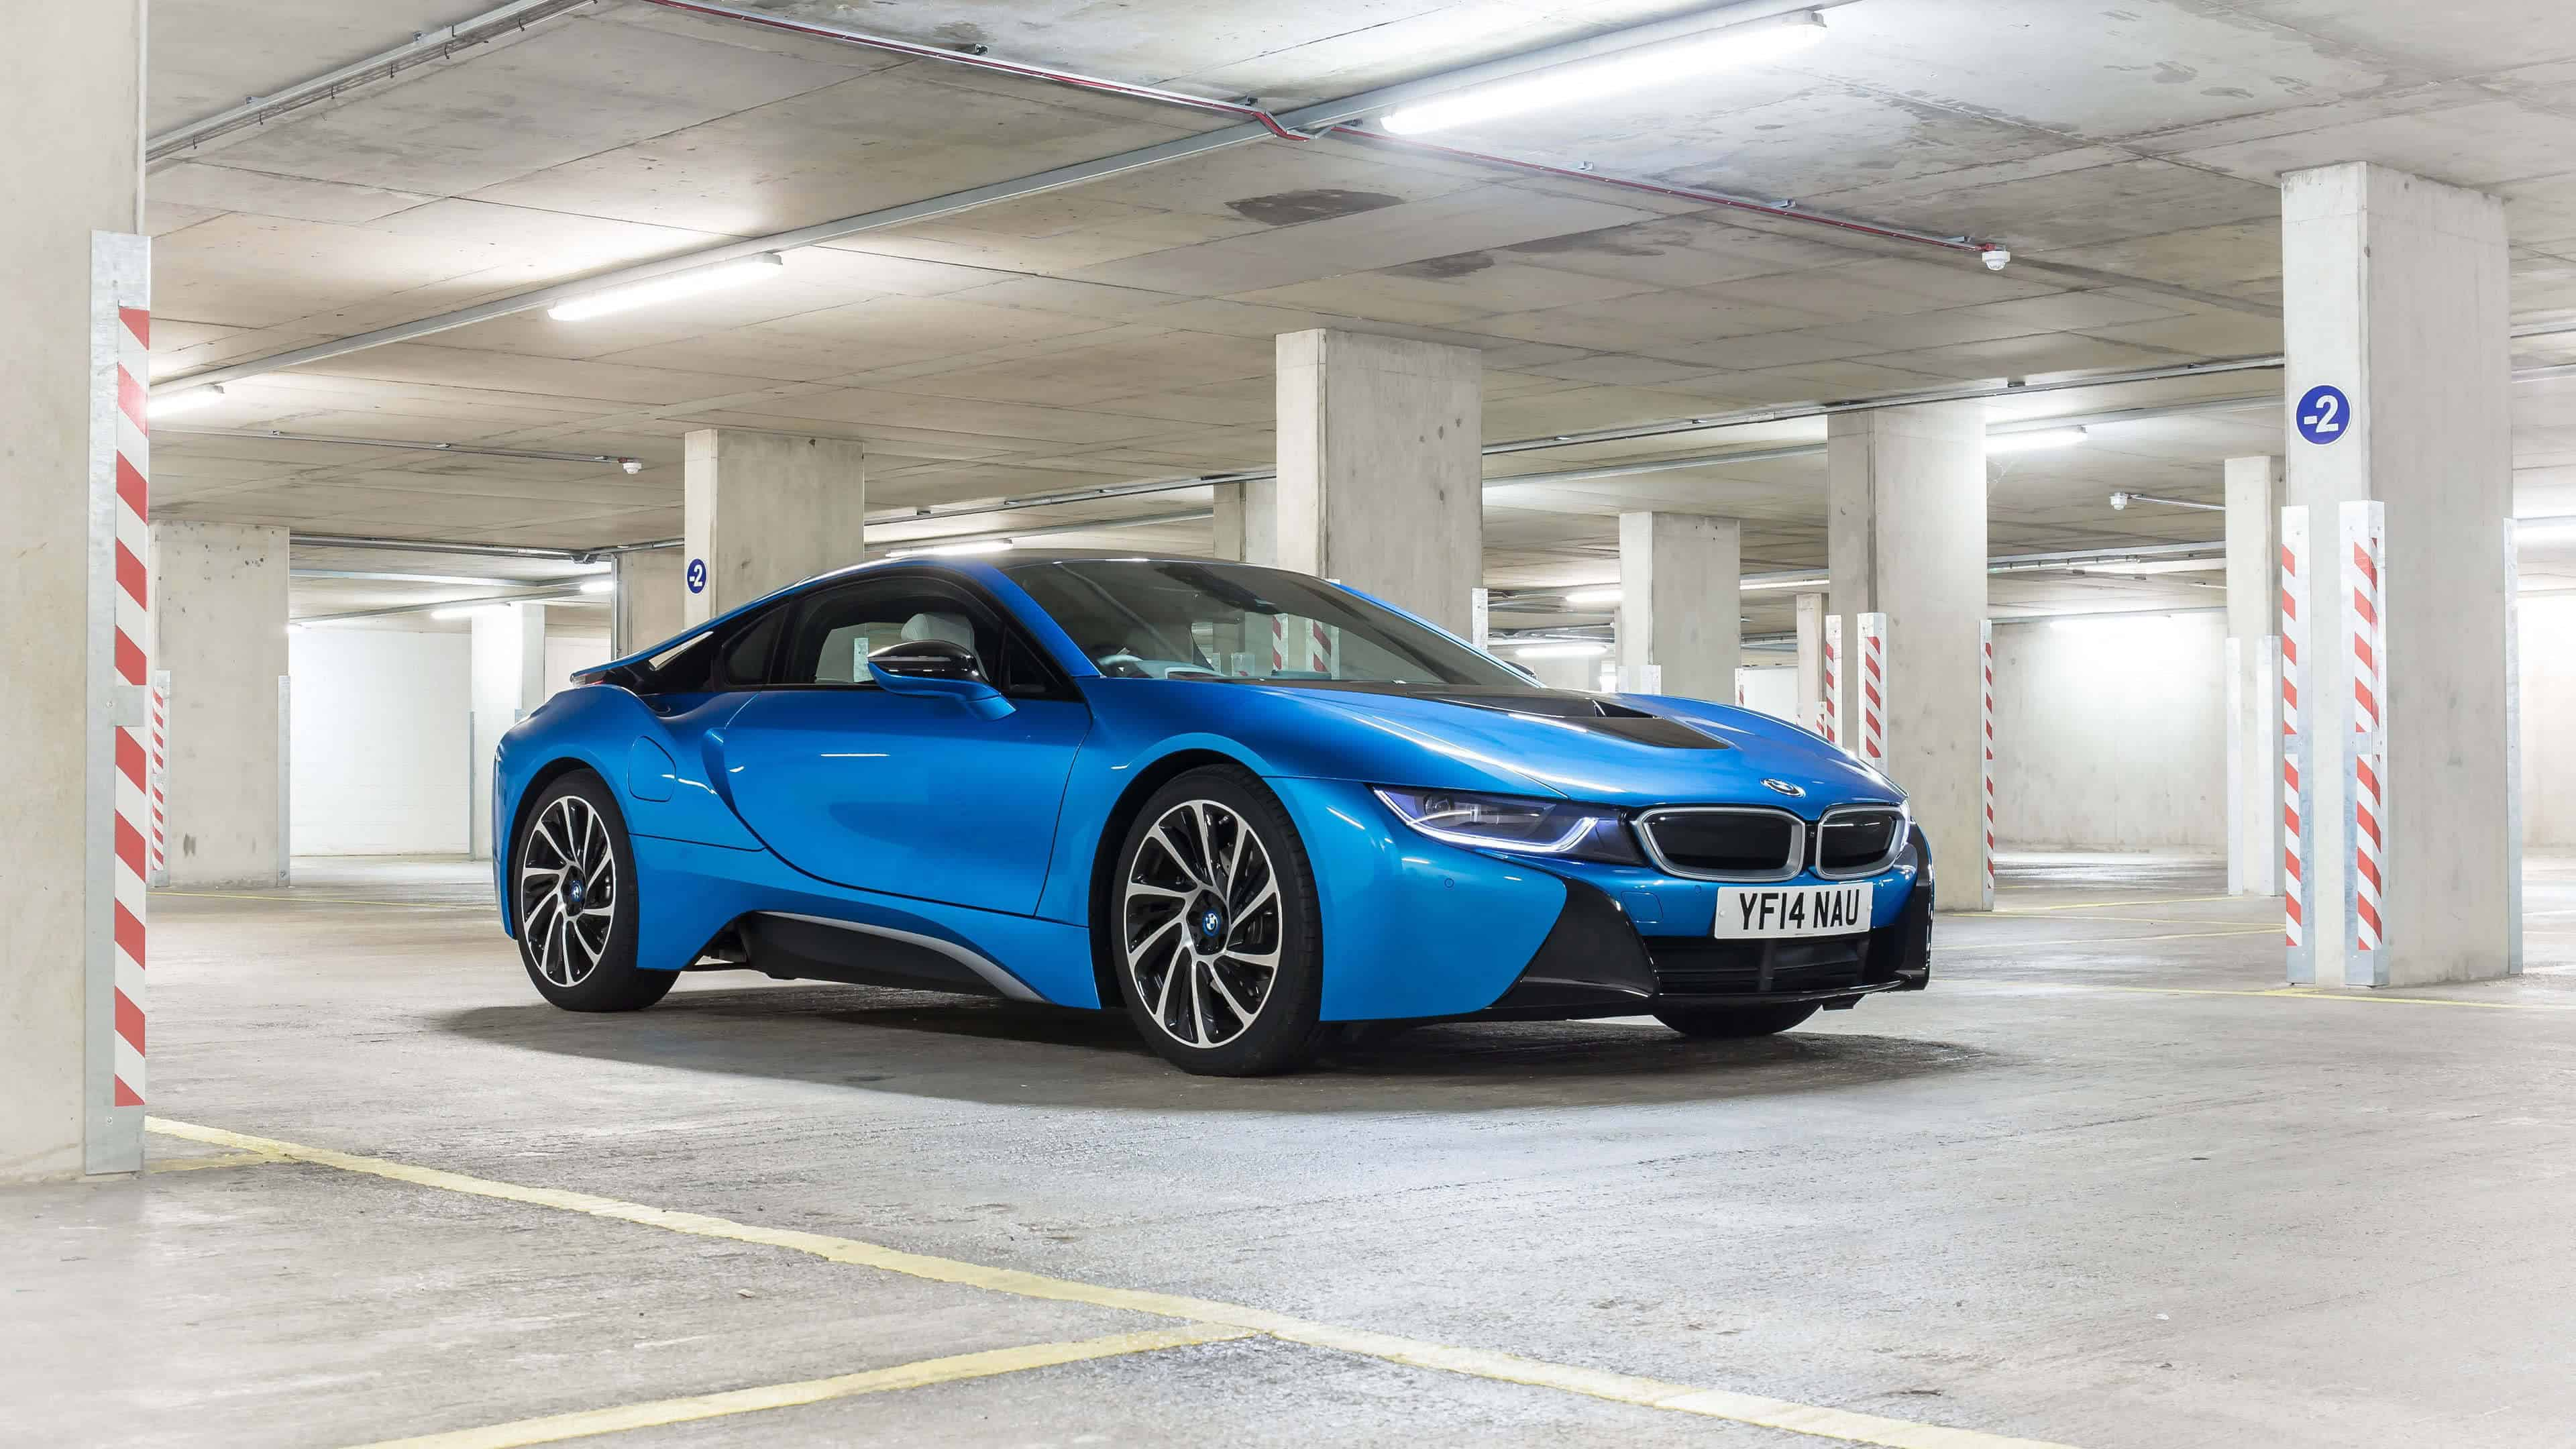 2016 blue bmw i8 uhd 4k wallpaper